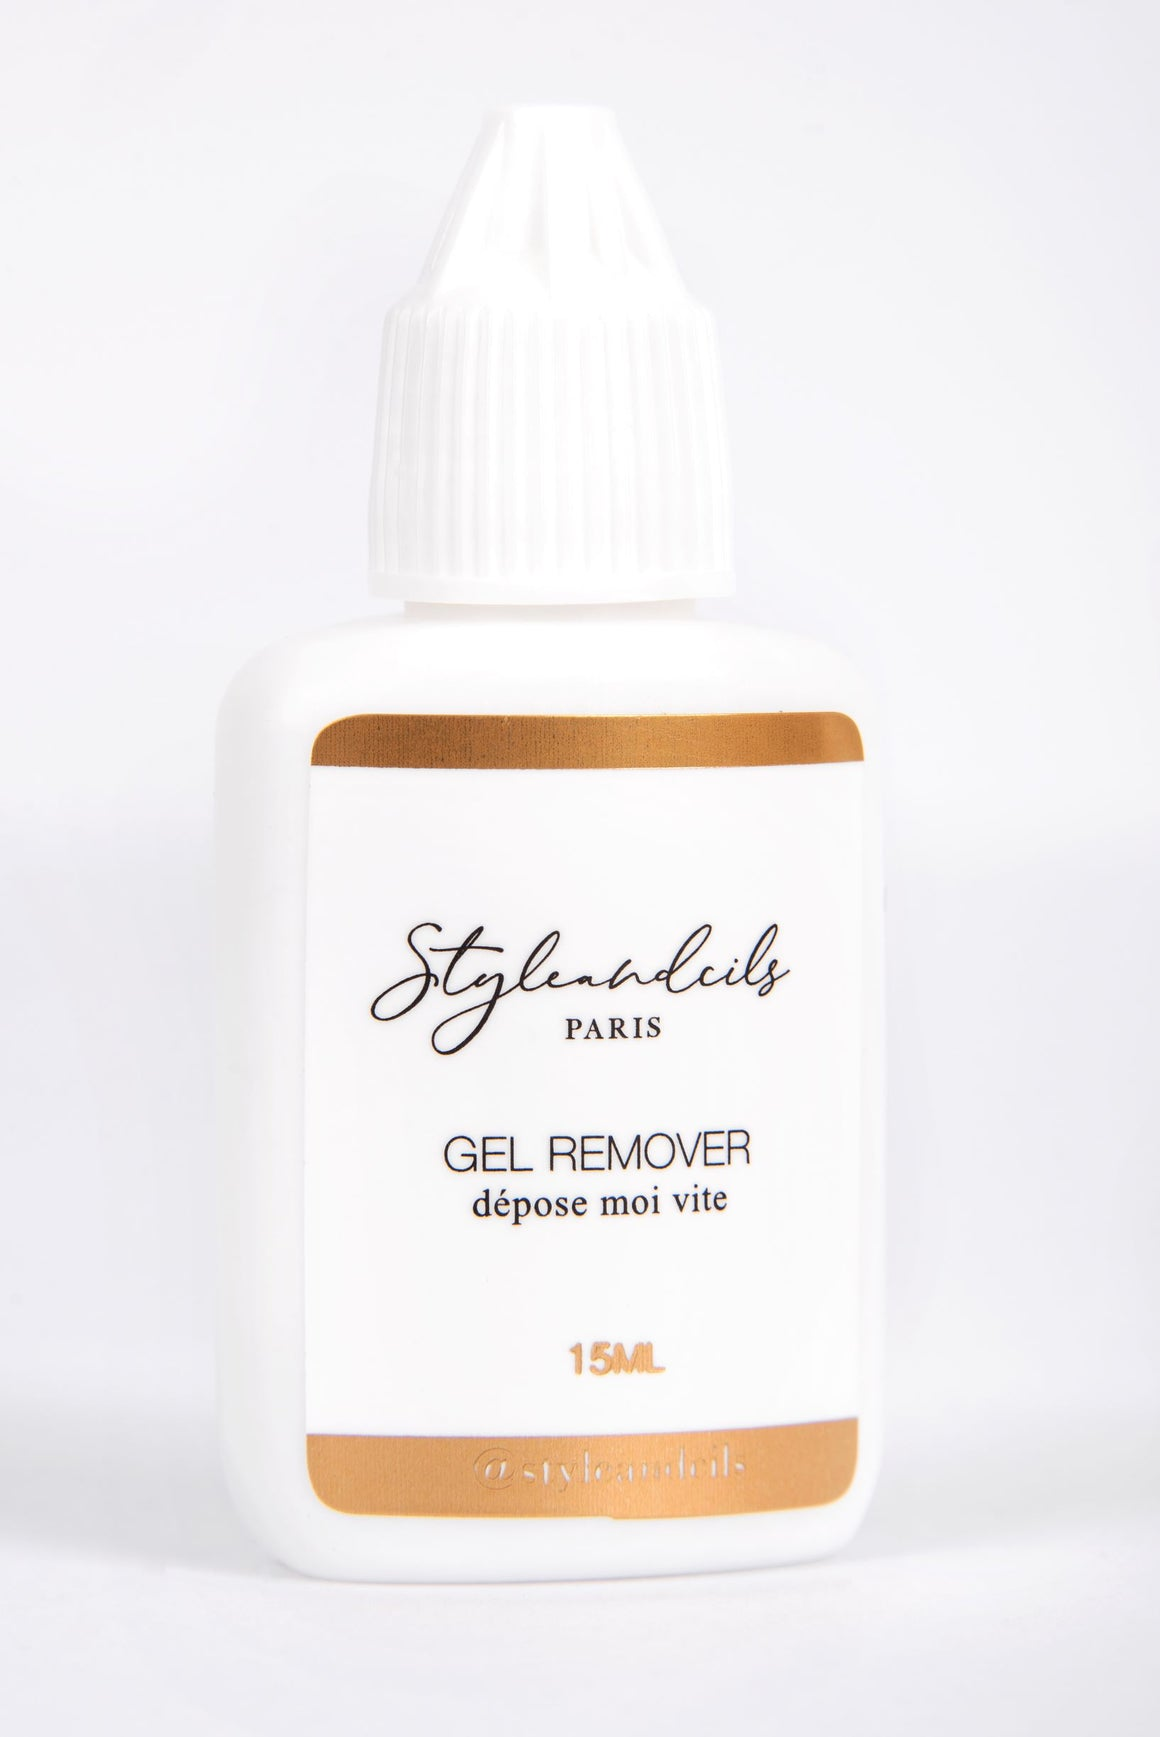 Gel Remover - Styleandcils